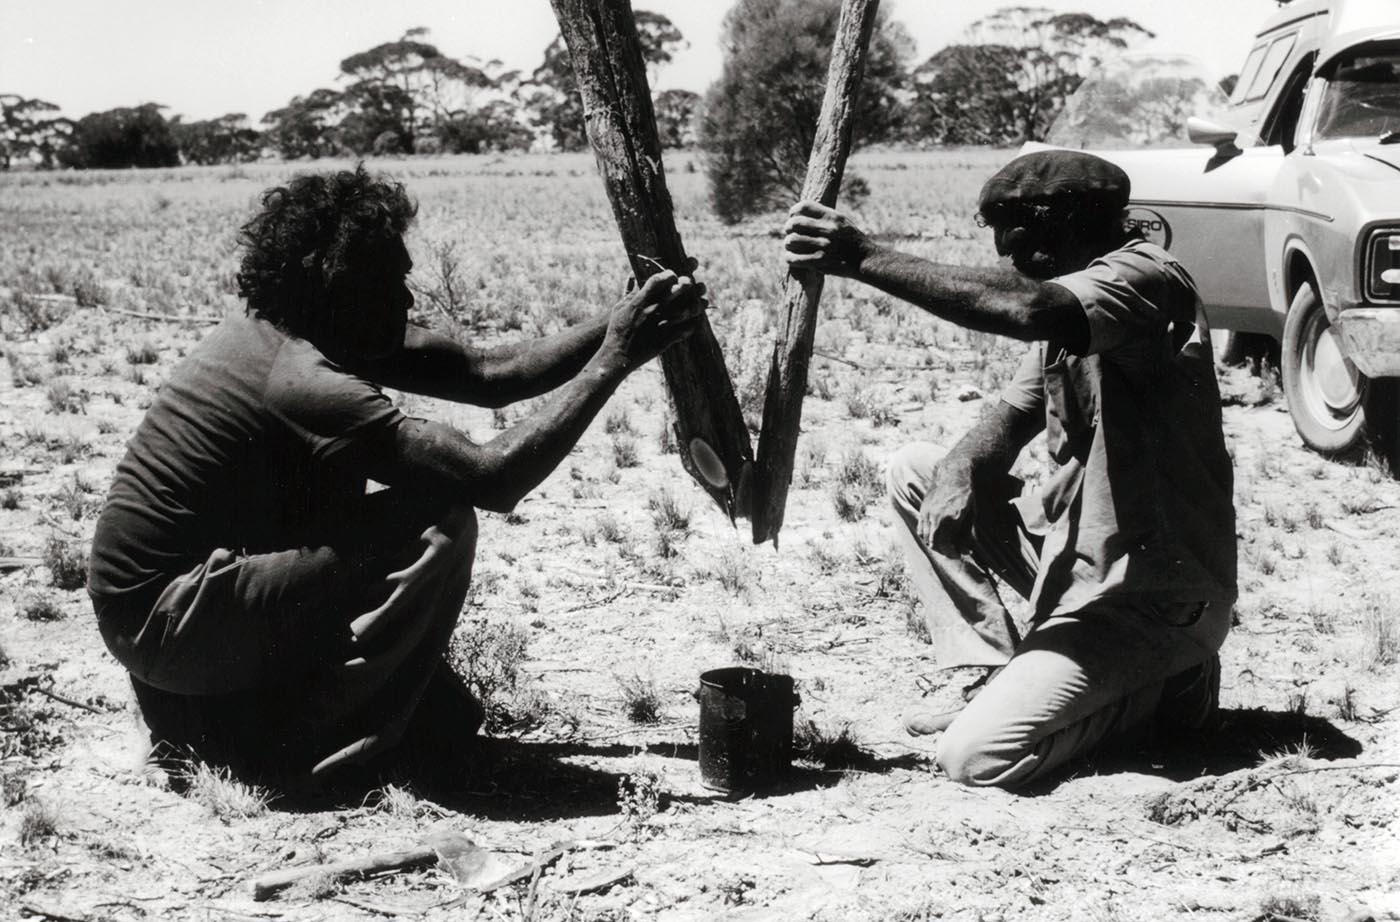 Black and white image showing side view of two men, squatting on the ground and holding sections of tree branches above a small tin.